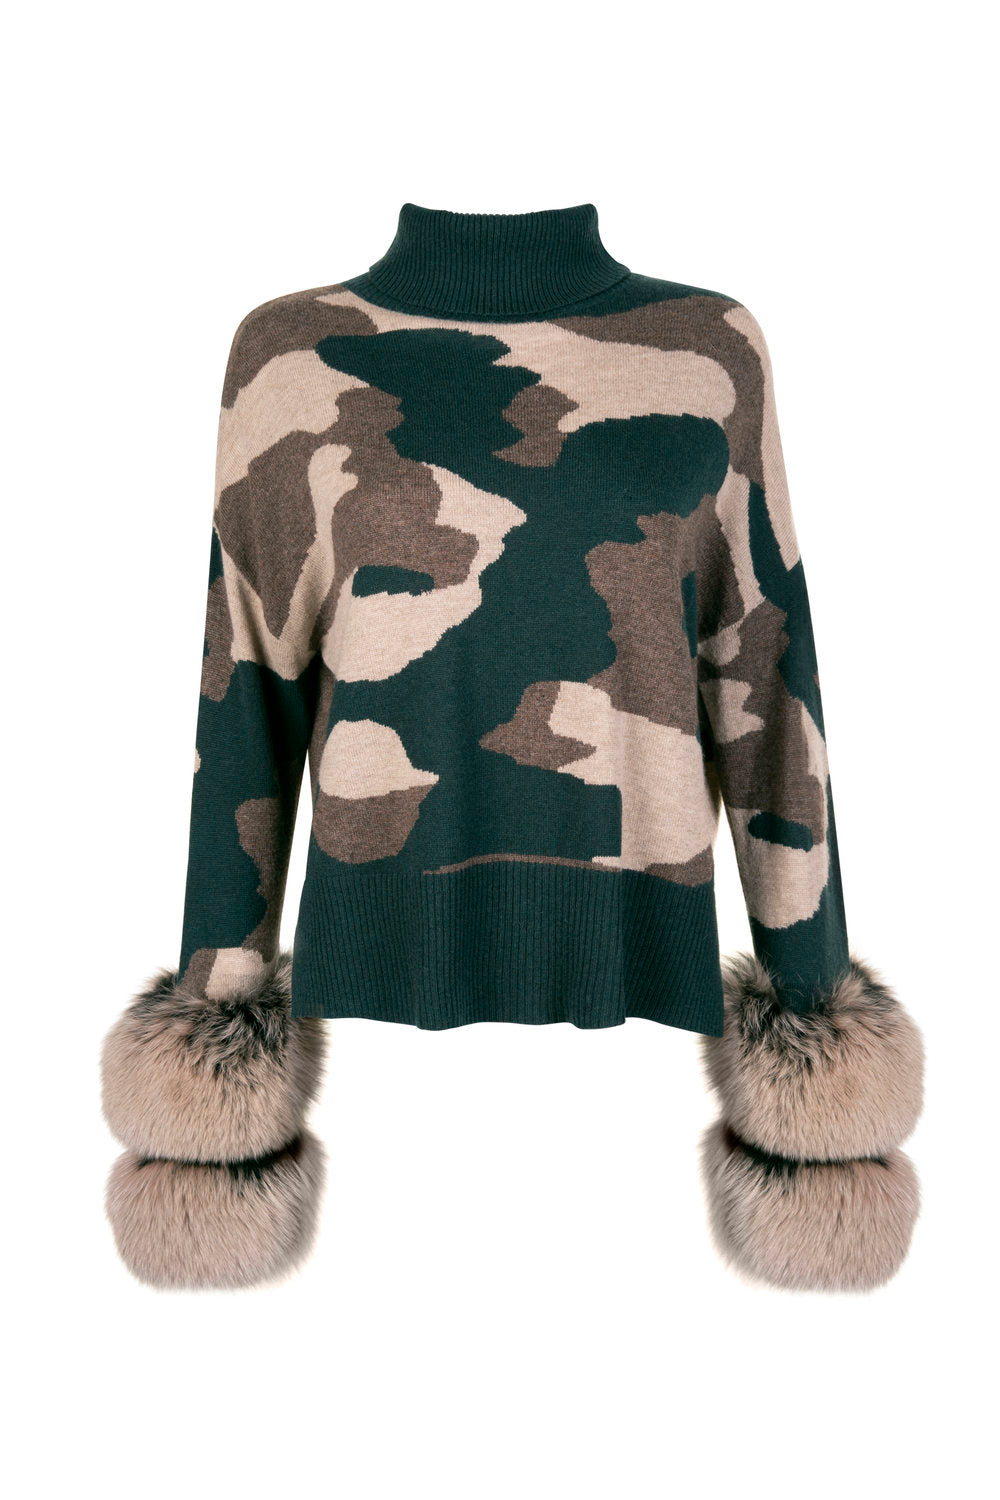 Camo Cropped Polo Neck Cuff Sweater